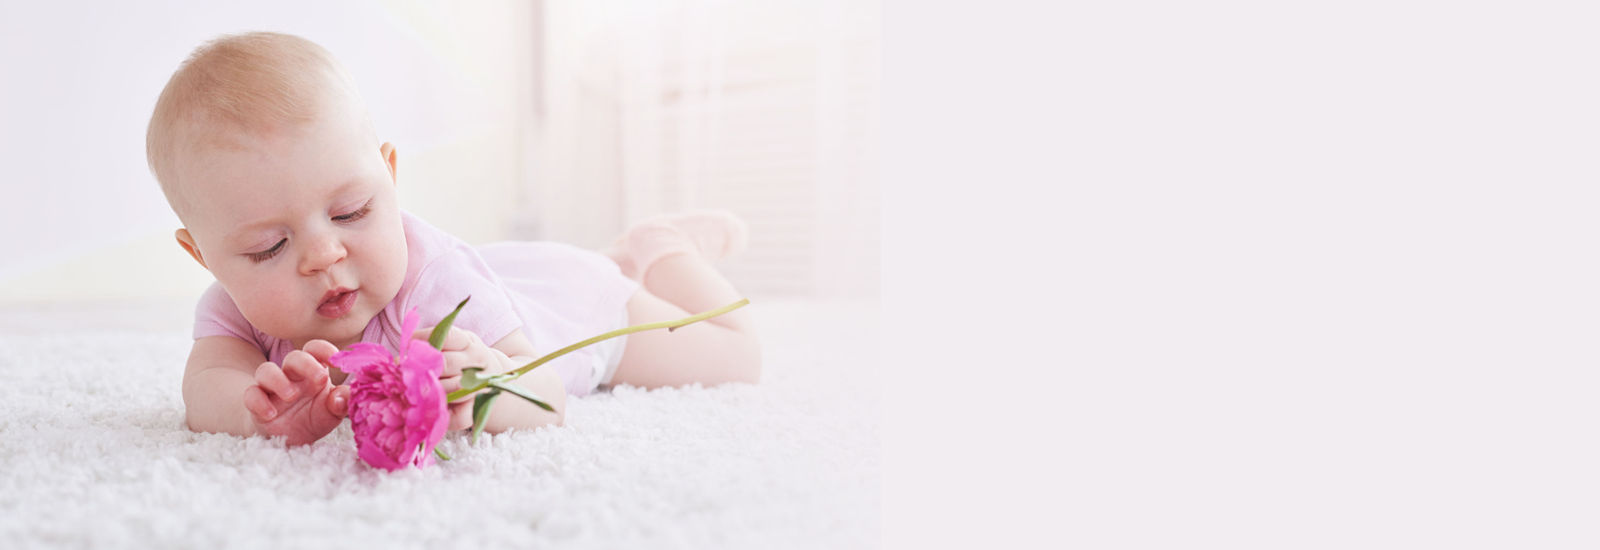 Carpet Cleaning In Fort Walton Beach Niceville And